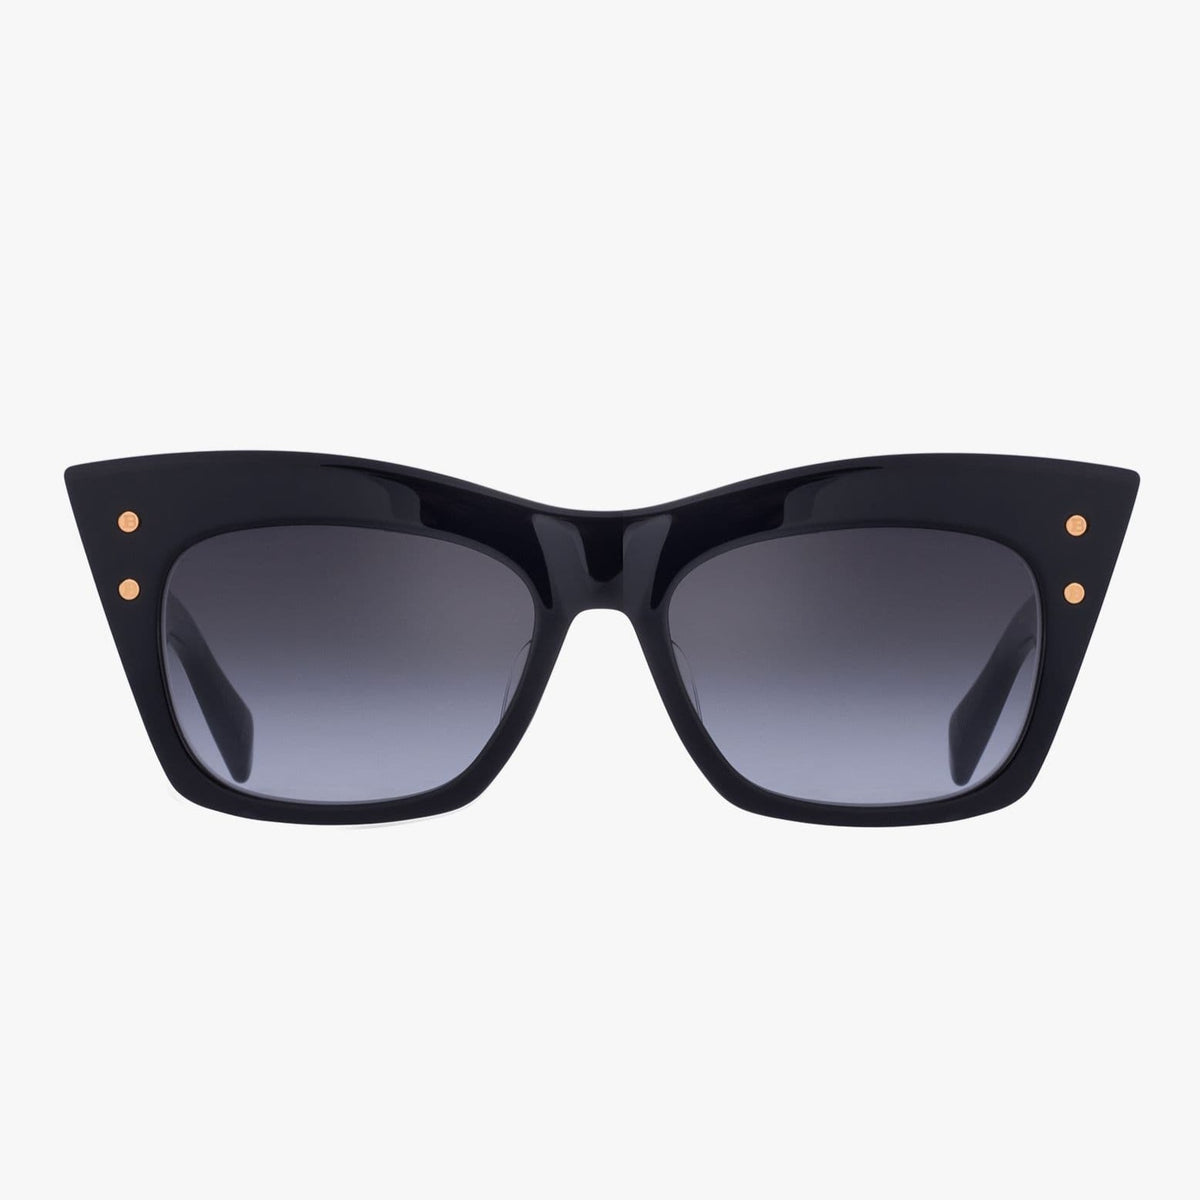 Balmain Unisex Black And Gold-Tone Acetate B-II Sunglasses